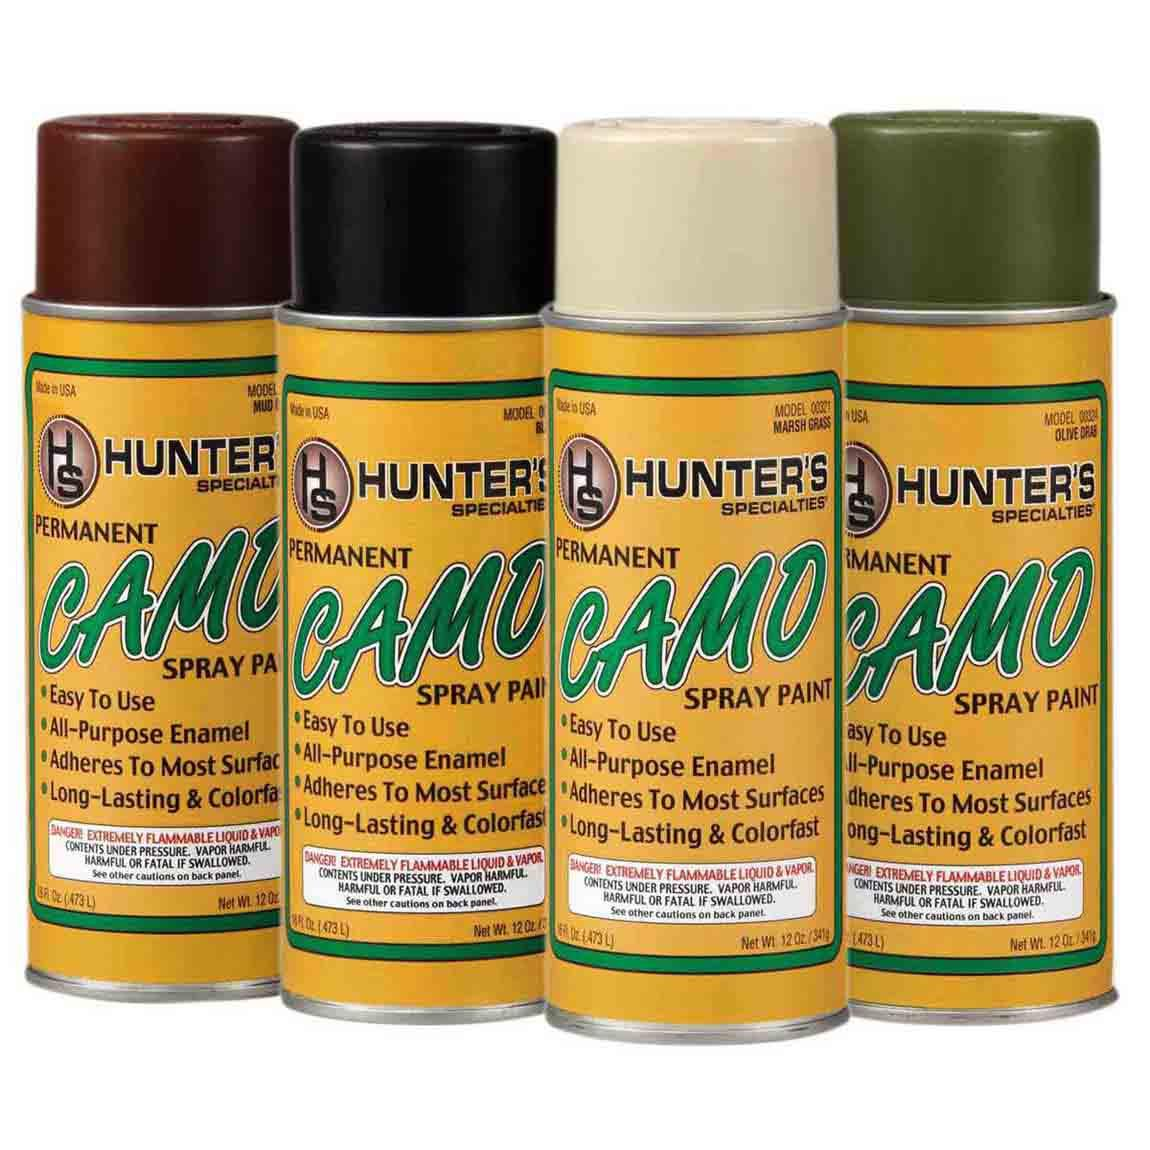 Hunter Specialties Permanent Camo Spray Paint